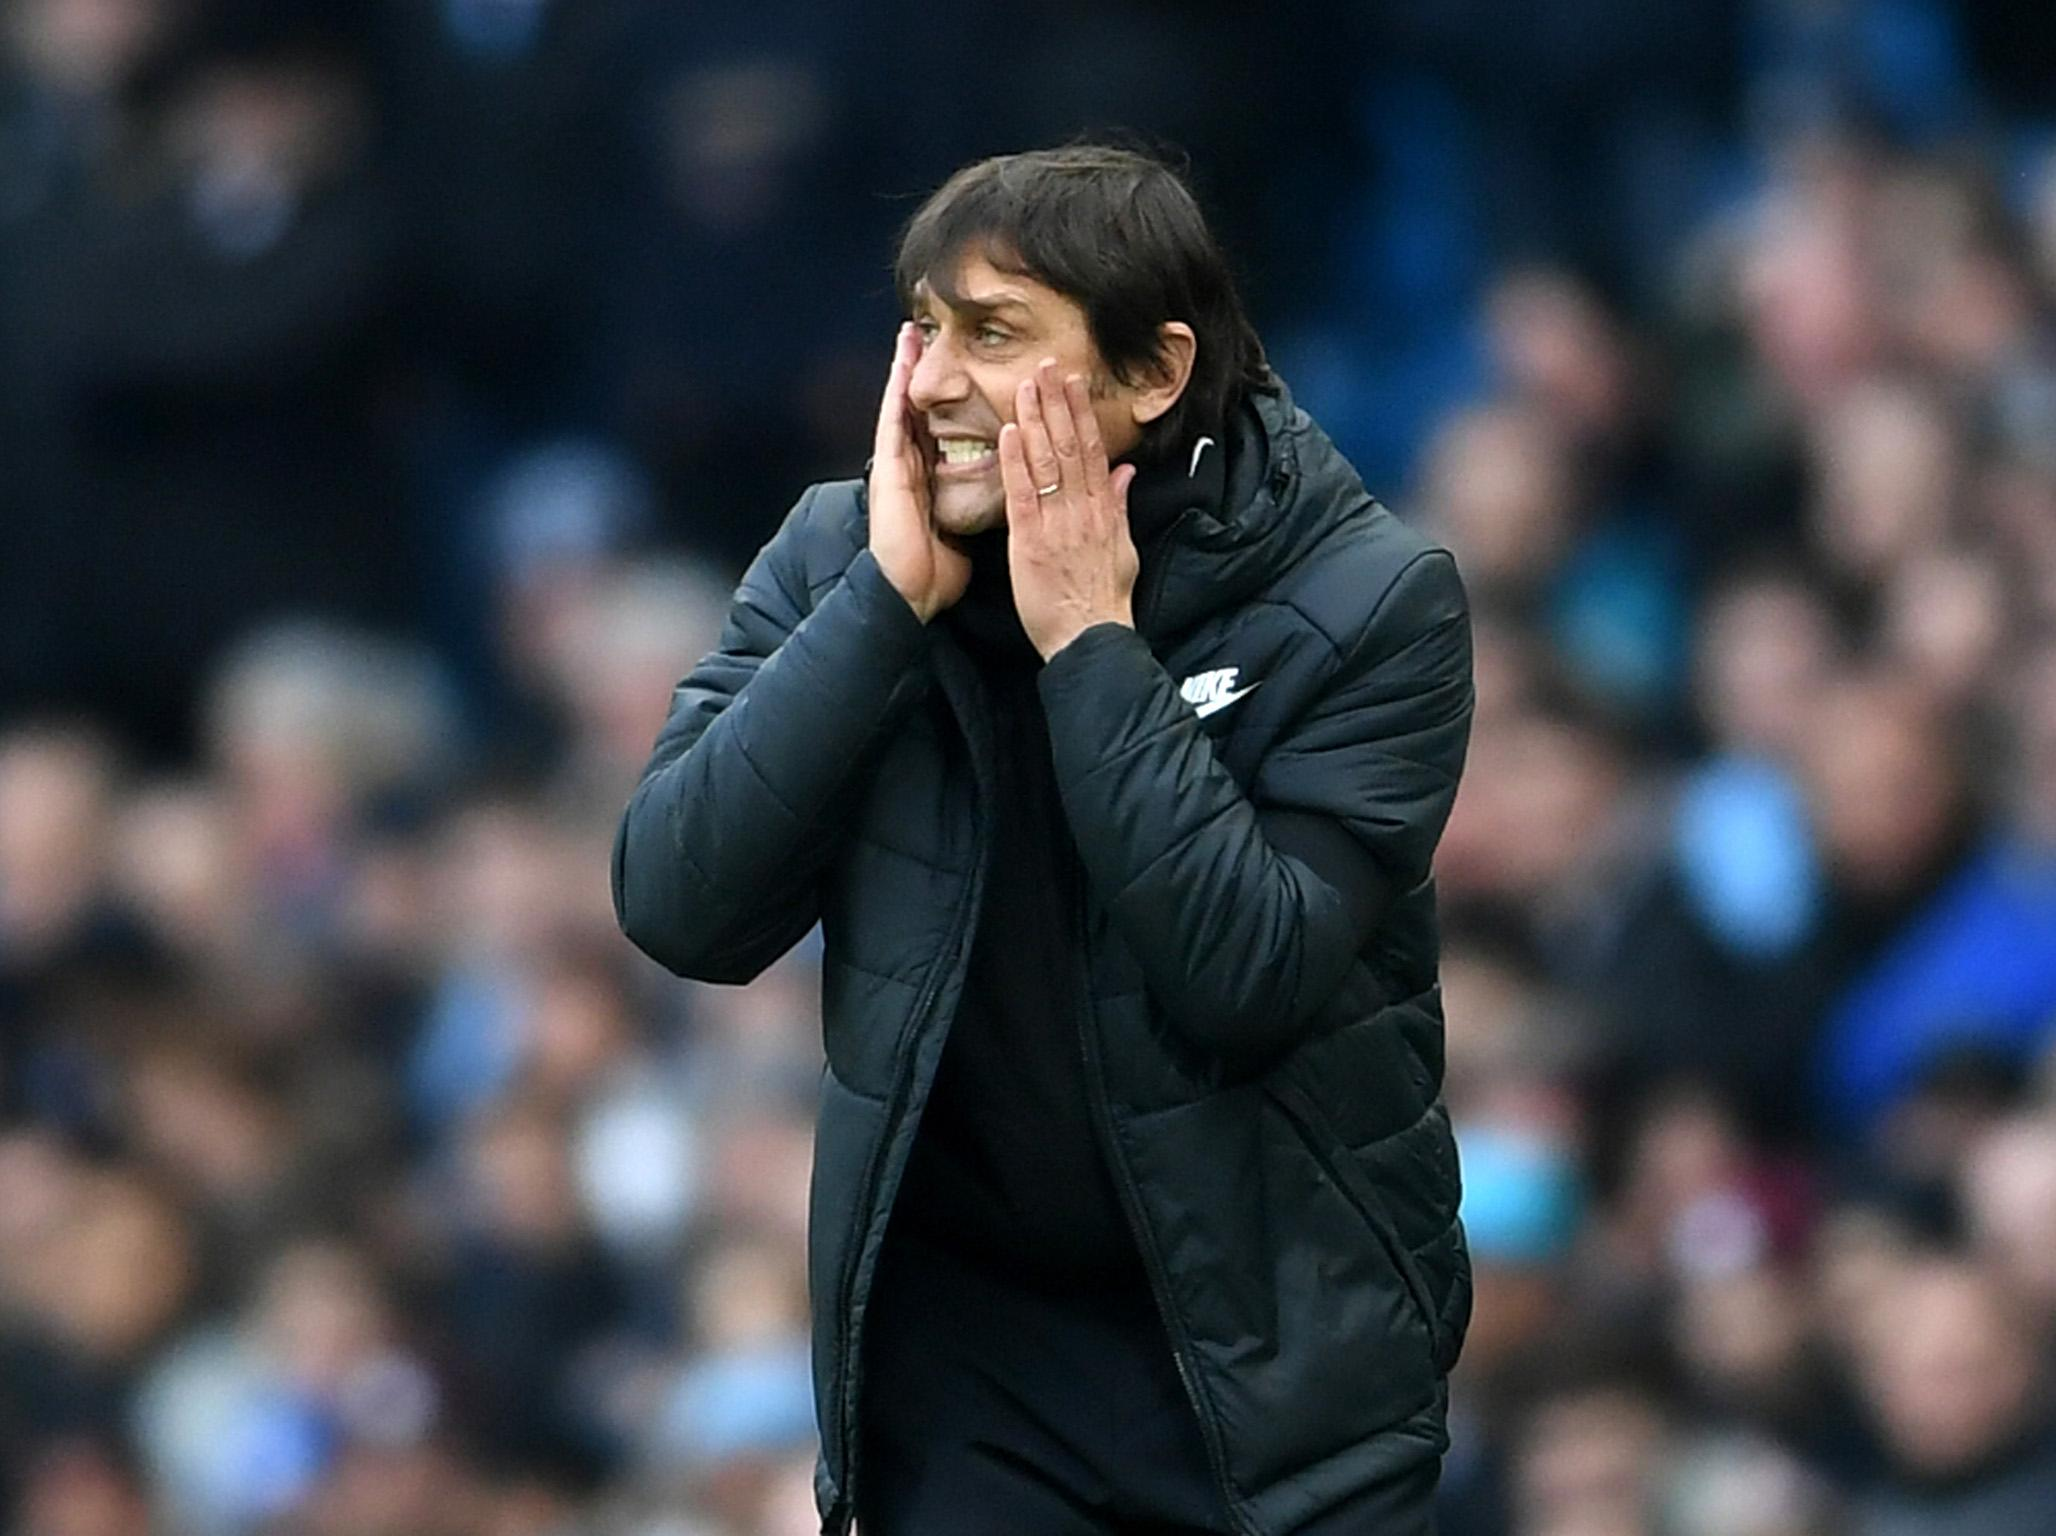 Antonio Conte Latest News Breaking Stories And Comment The Flexus Gesture Control Sleeve Chelsea Will Struggle To Make Top Four Unless They Beat Spurs